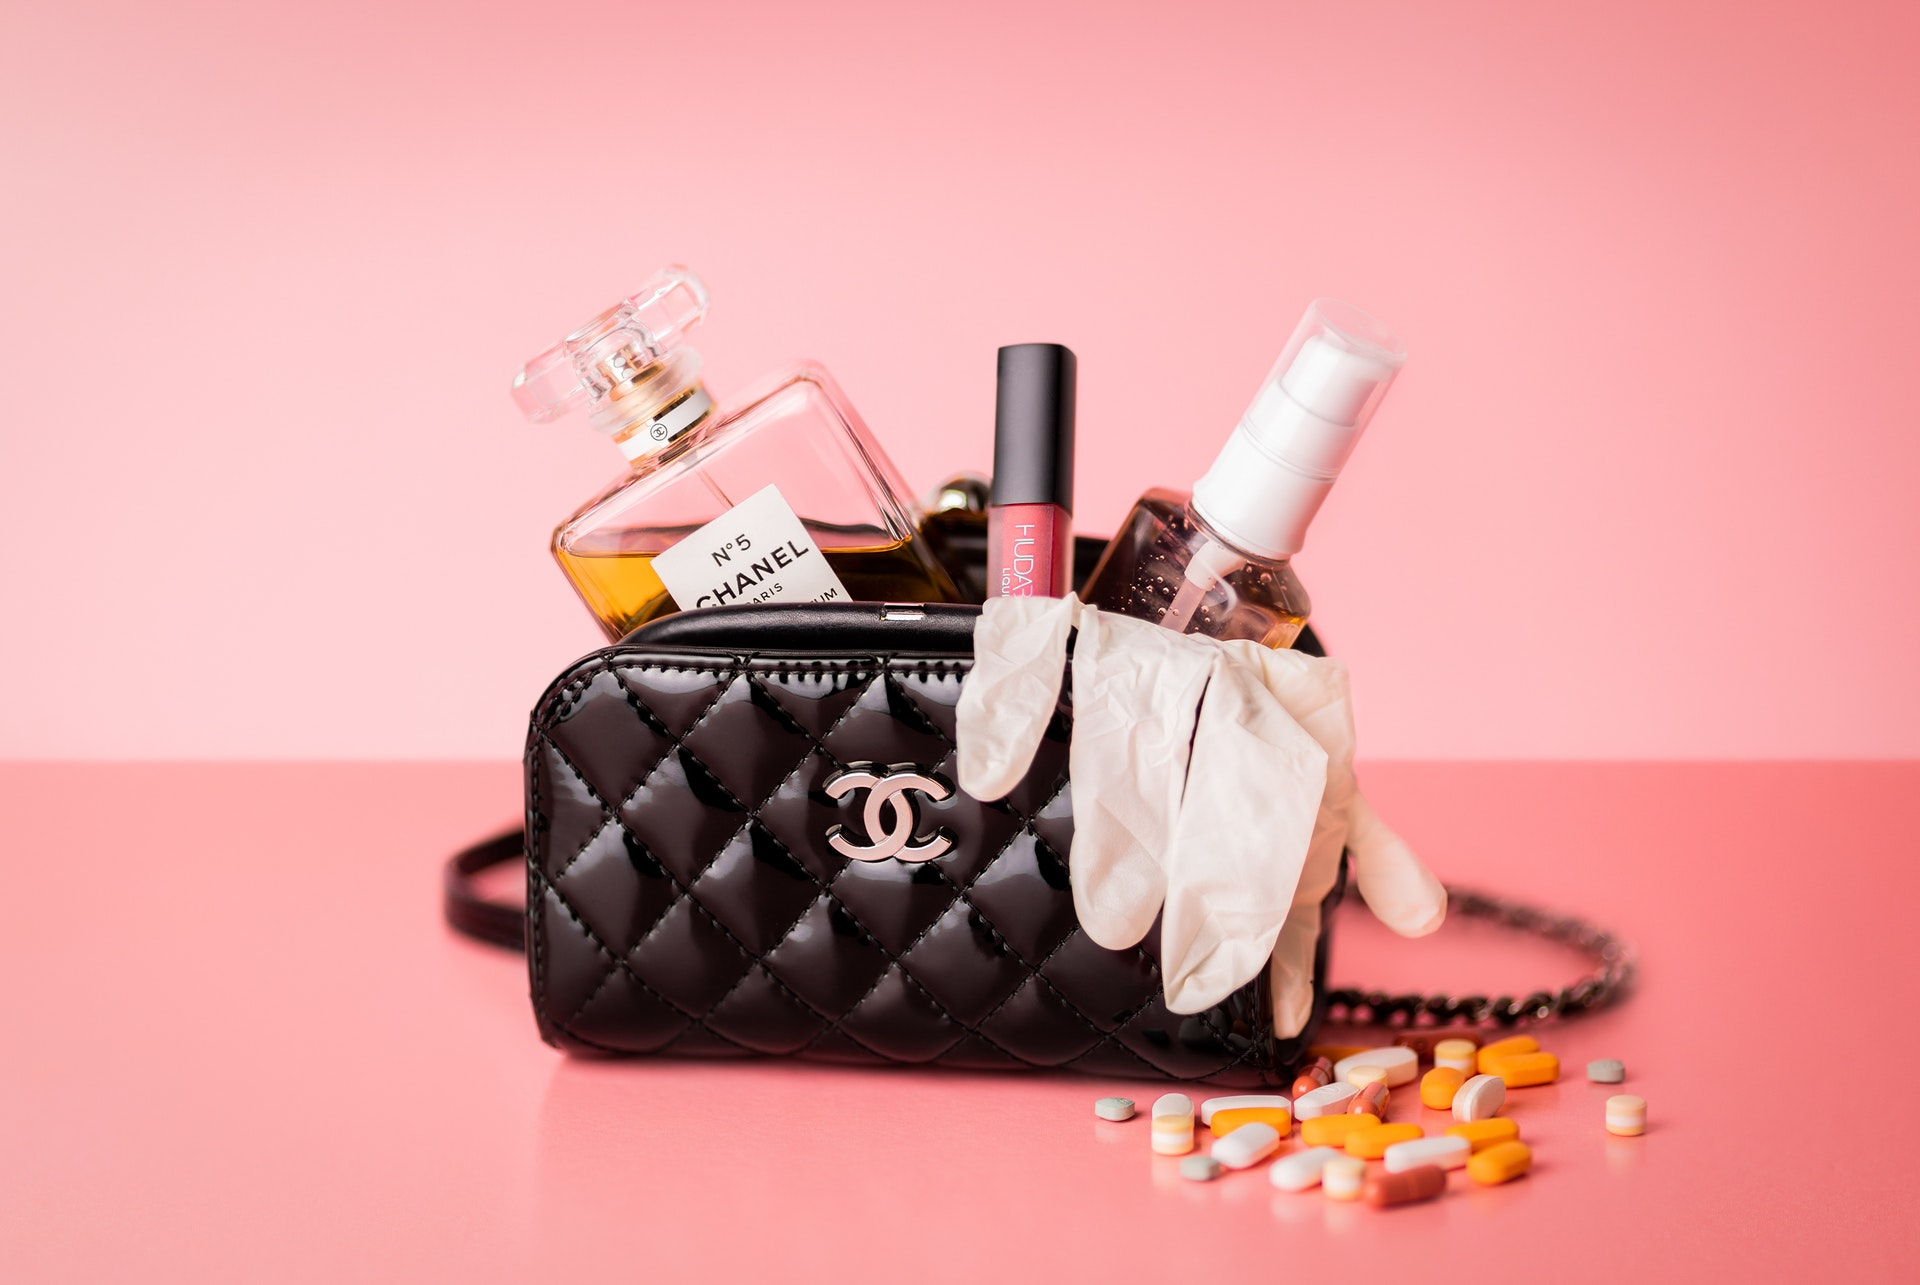 The classic CHANEL 2.55 flap bag